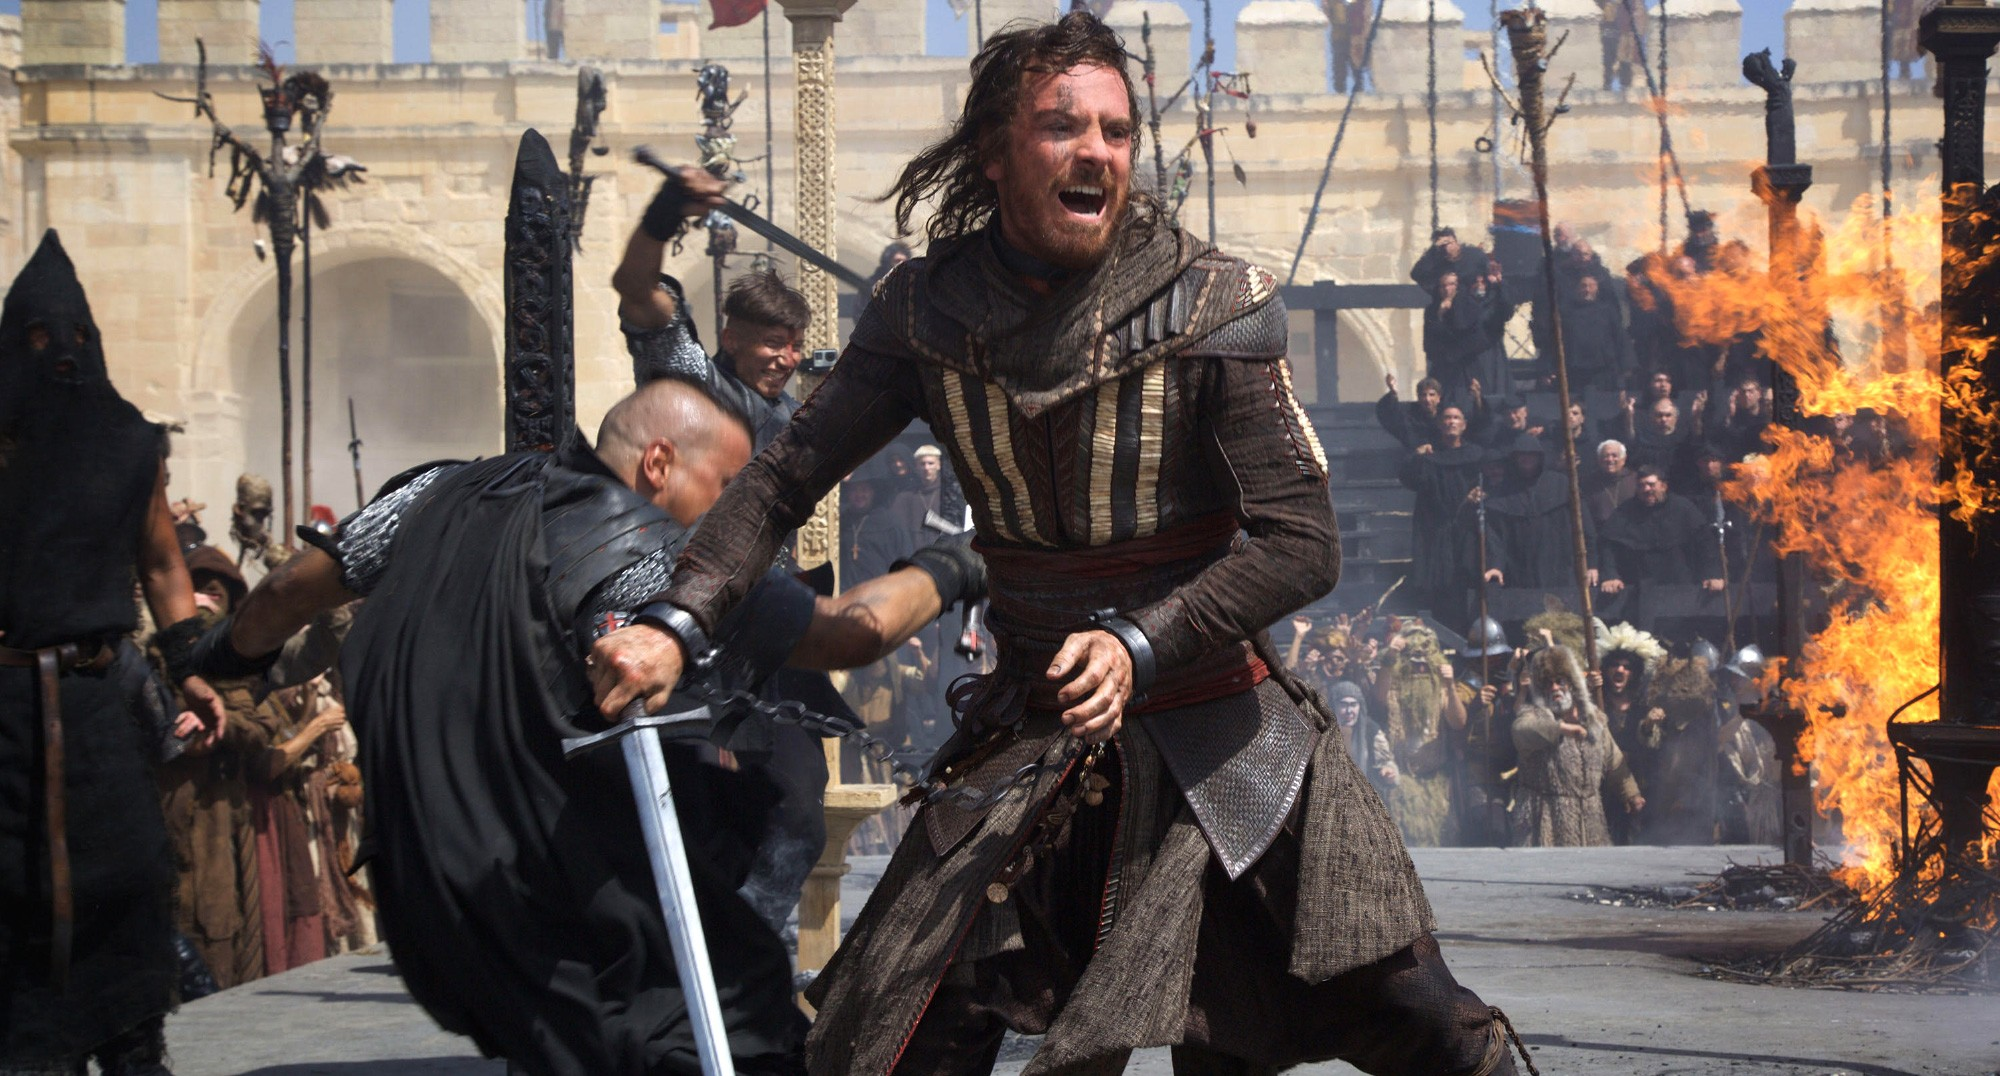 'Assassins Creed' movie review by Lucas Mirabella